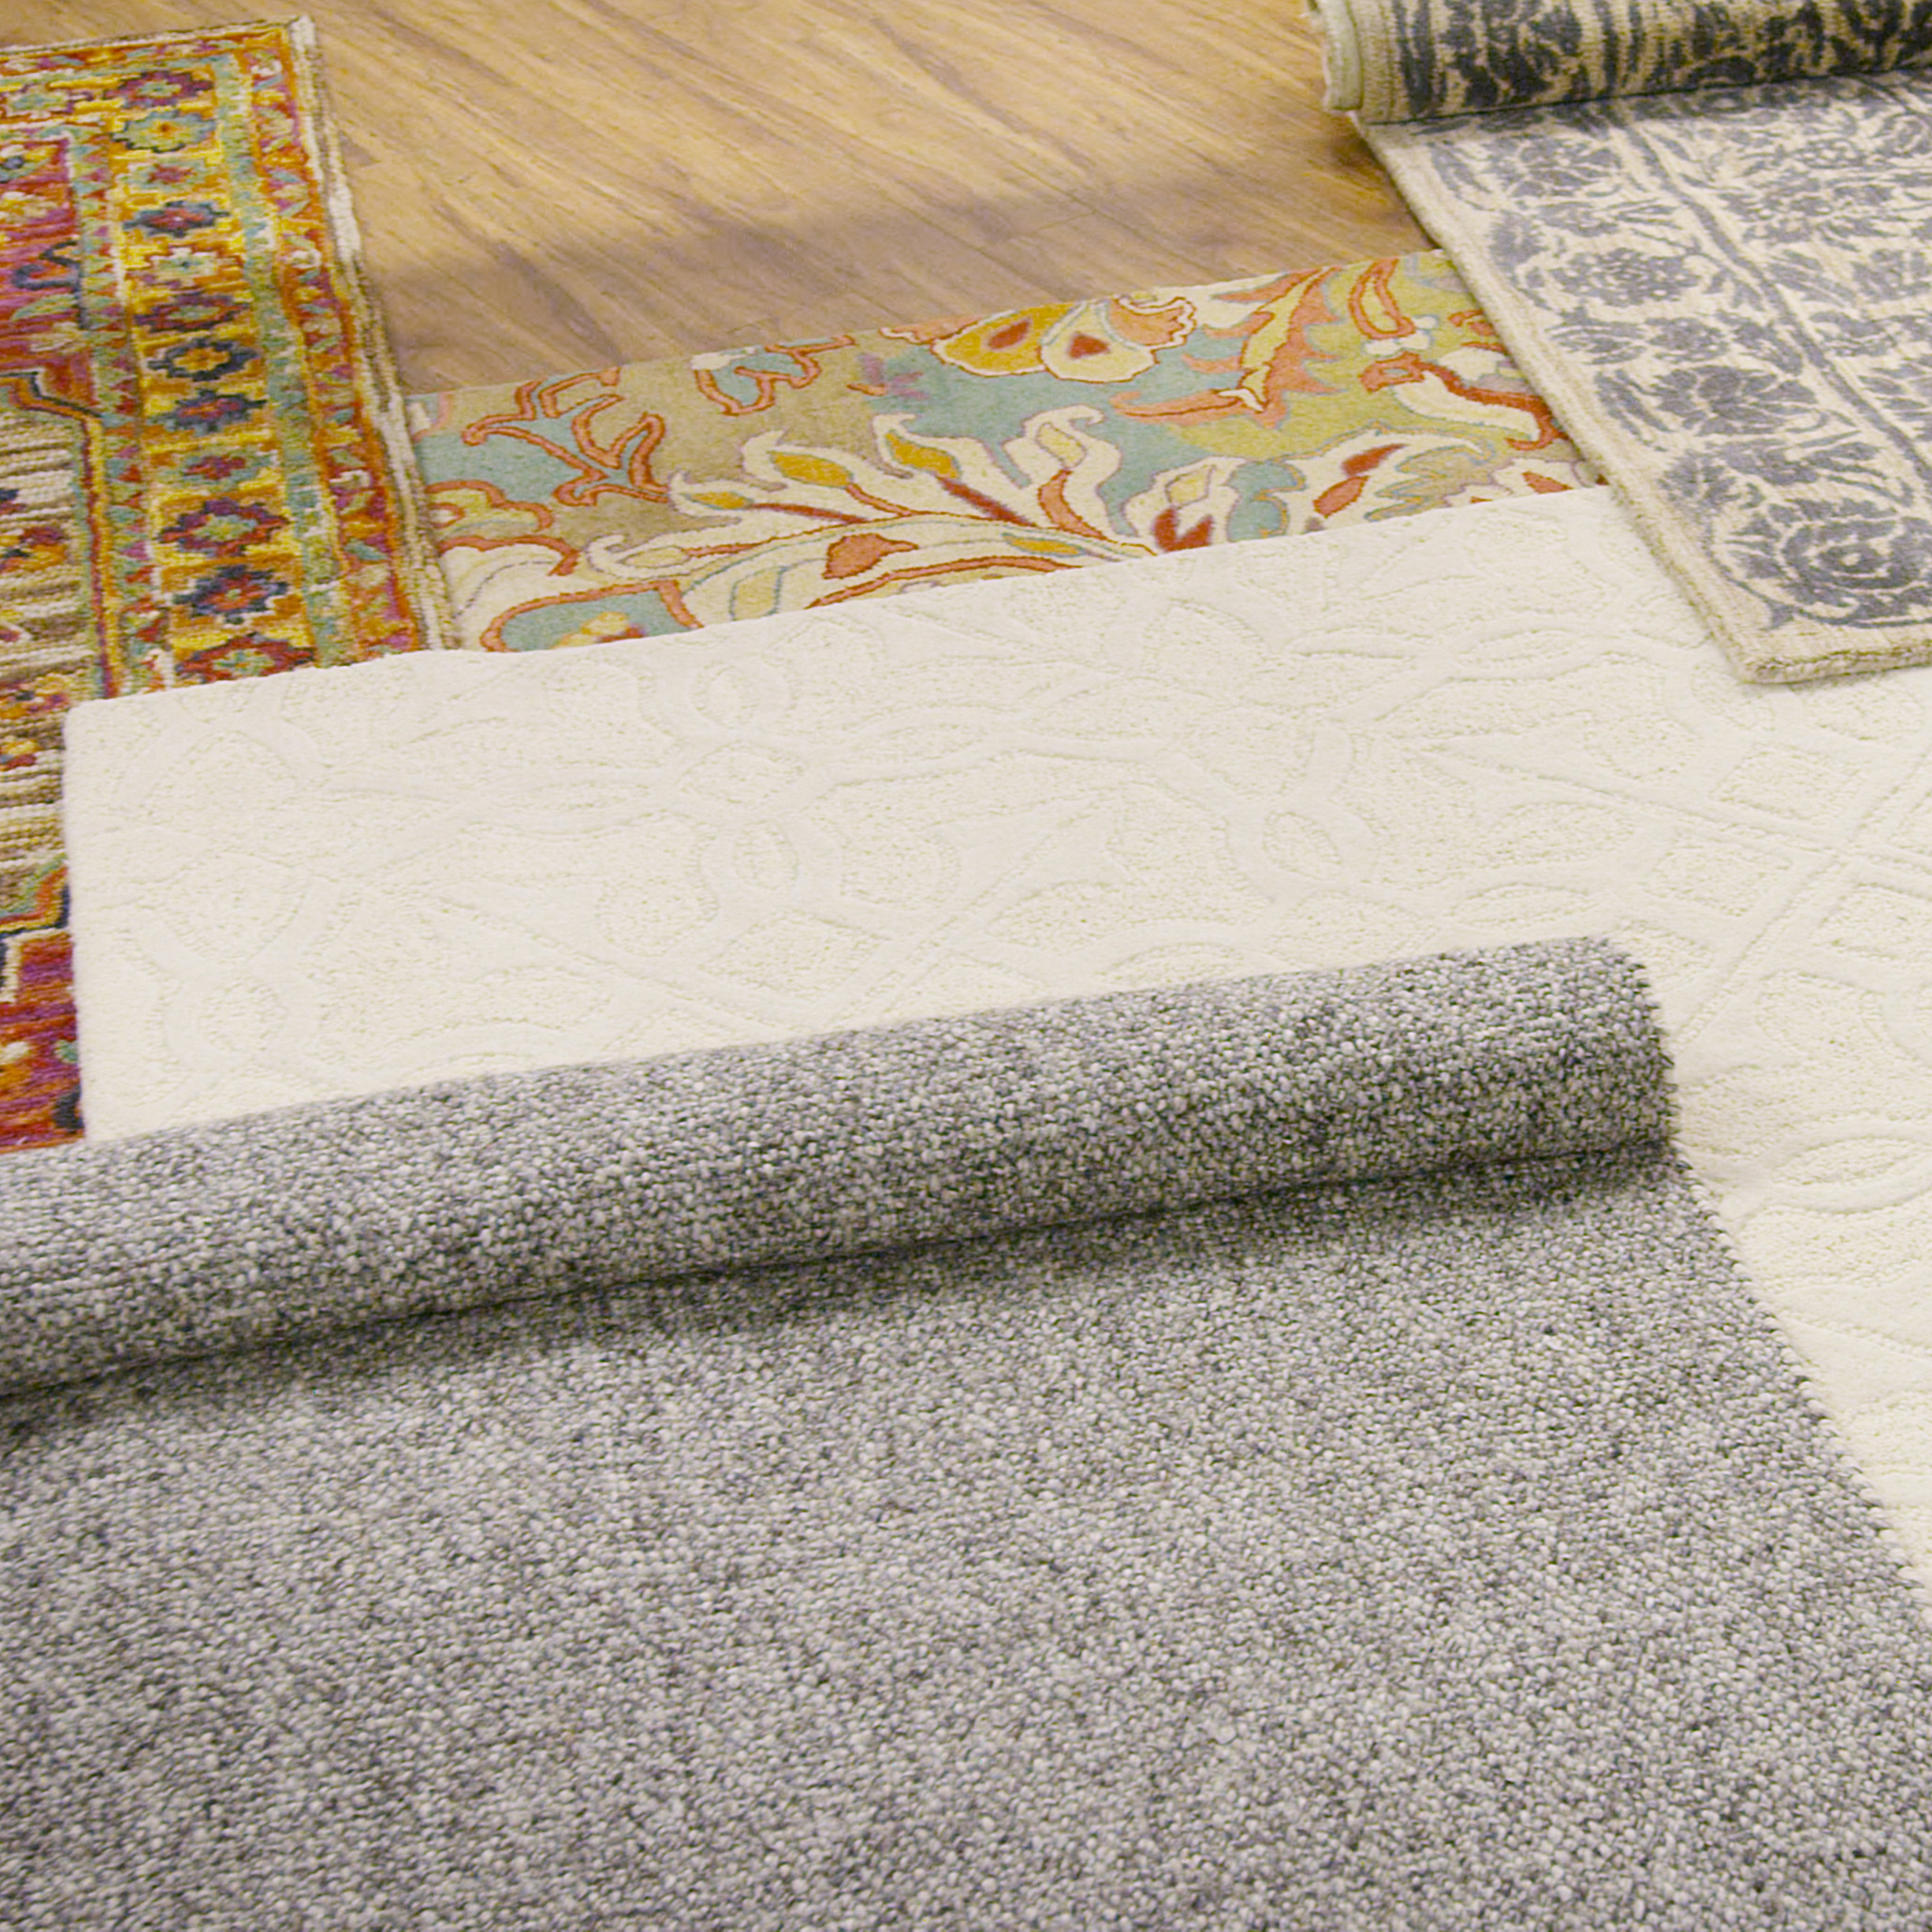 Popular Photo of Flat Weave Wool Area Rugs